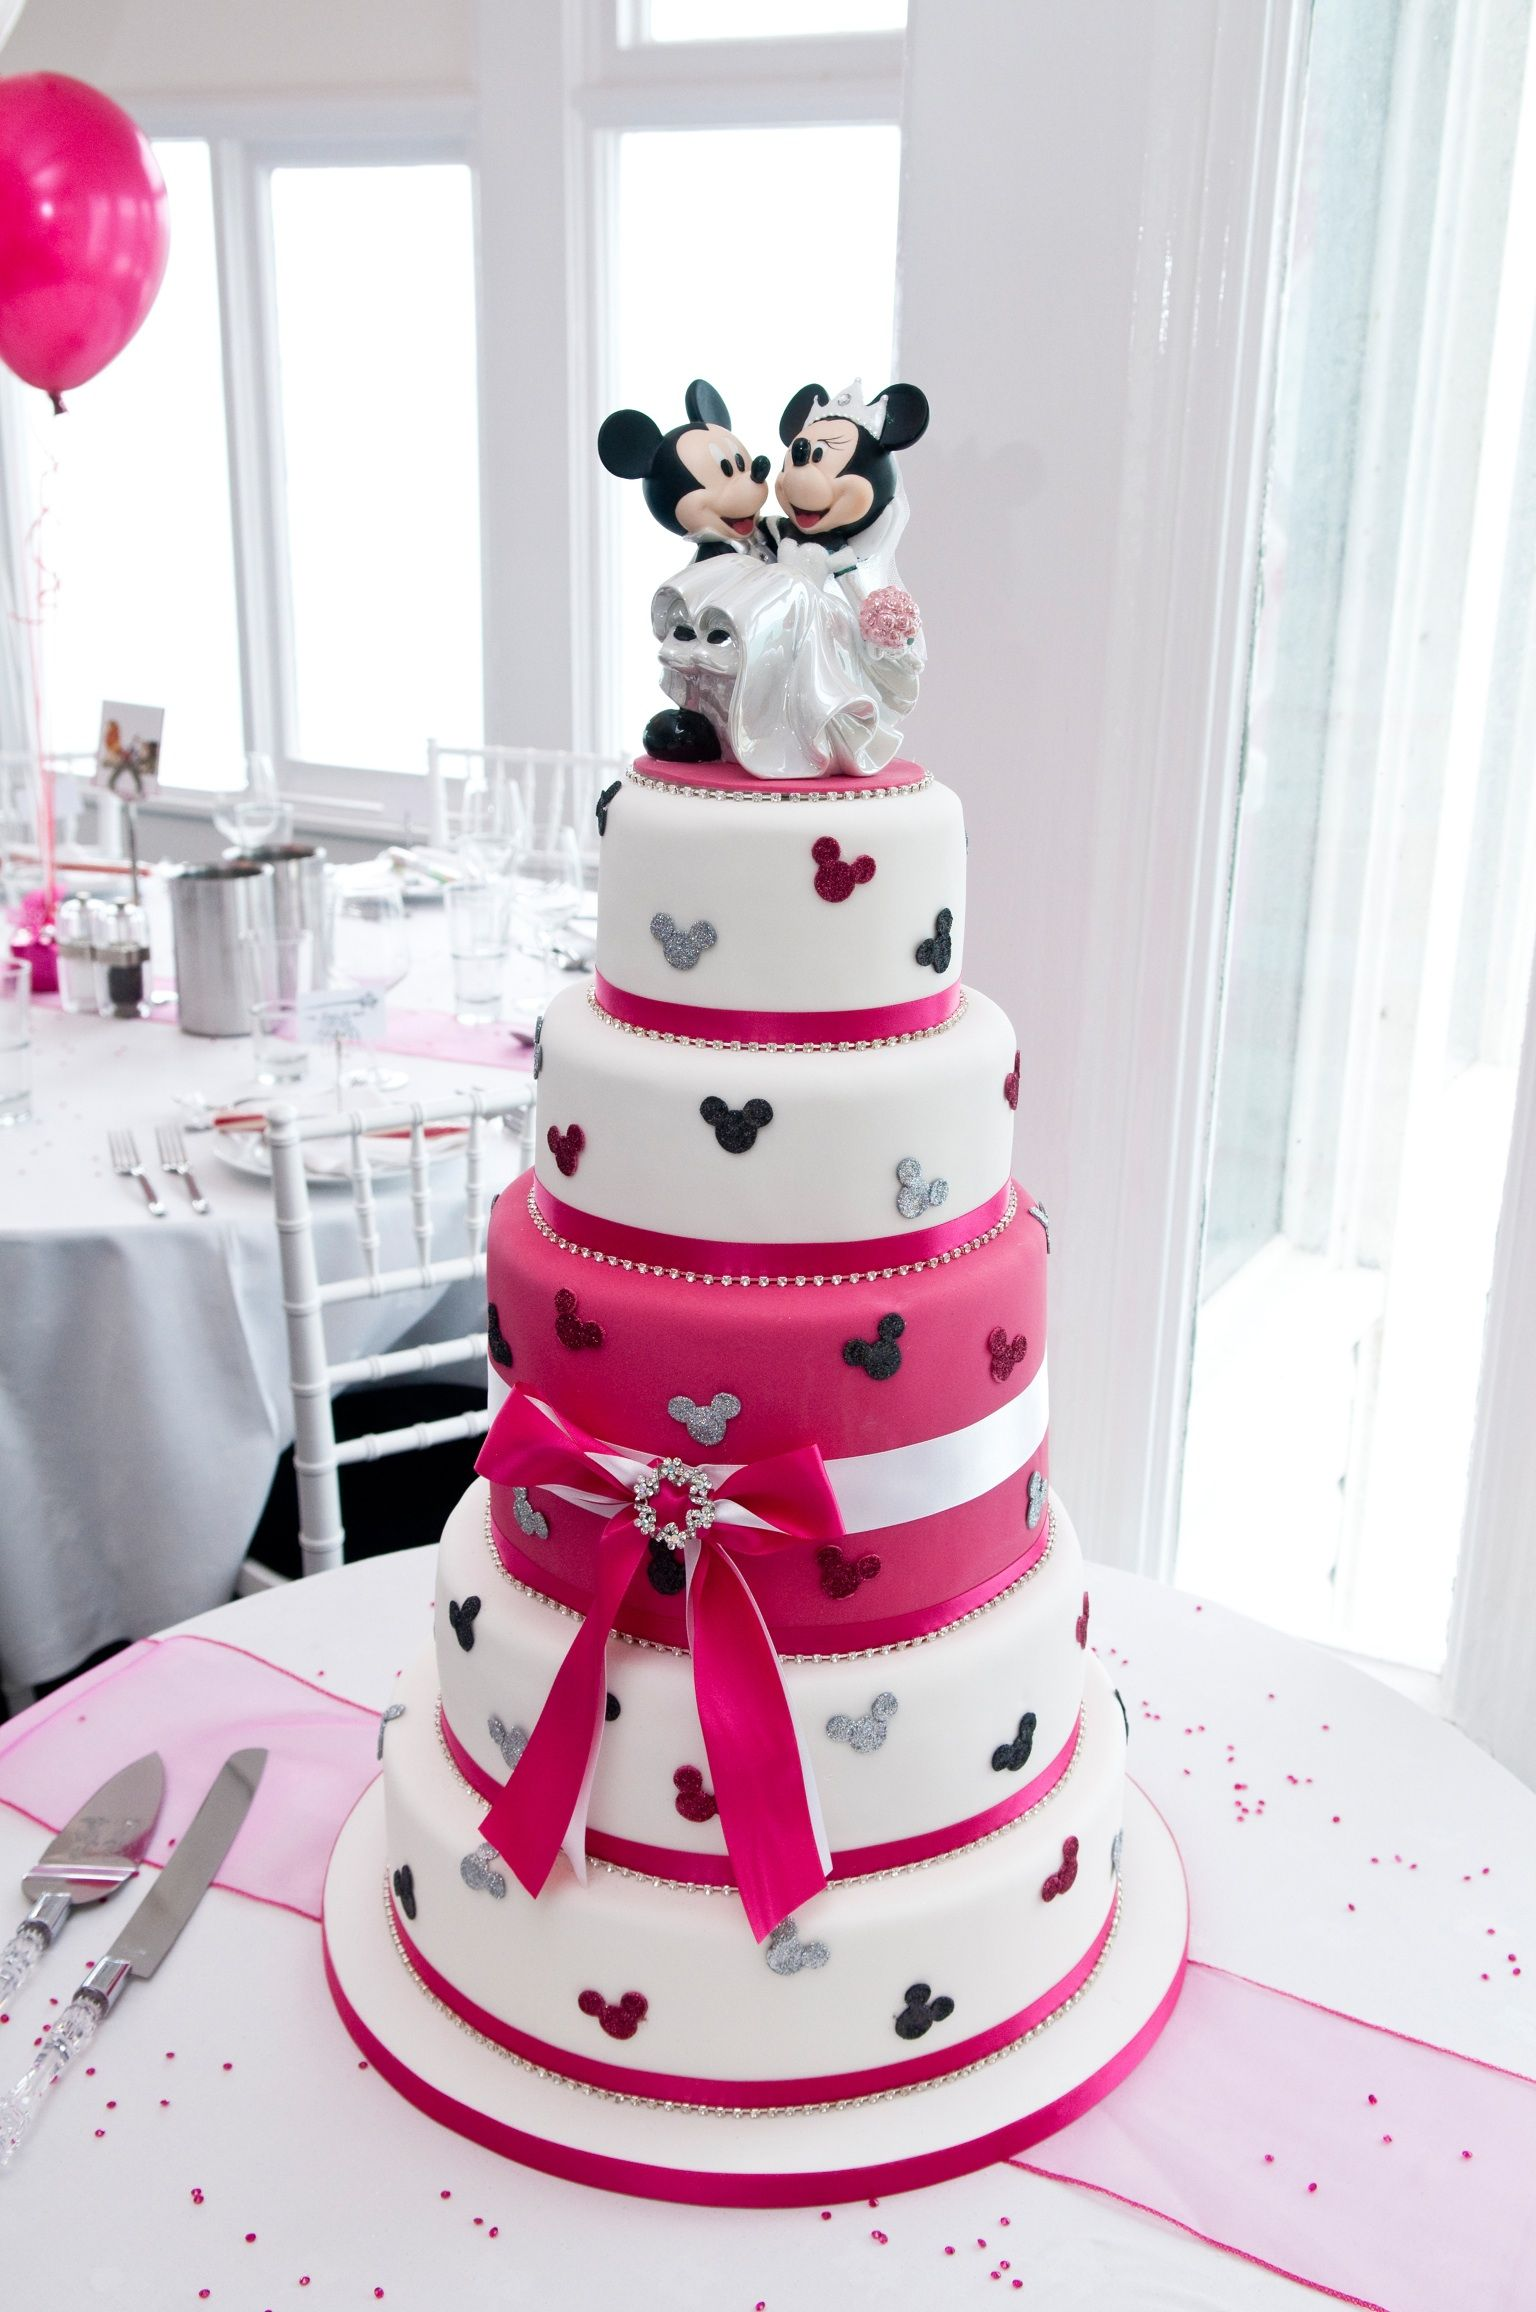 Our disney wedding cake we got married September 1st 2012 and had a ...